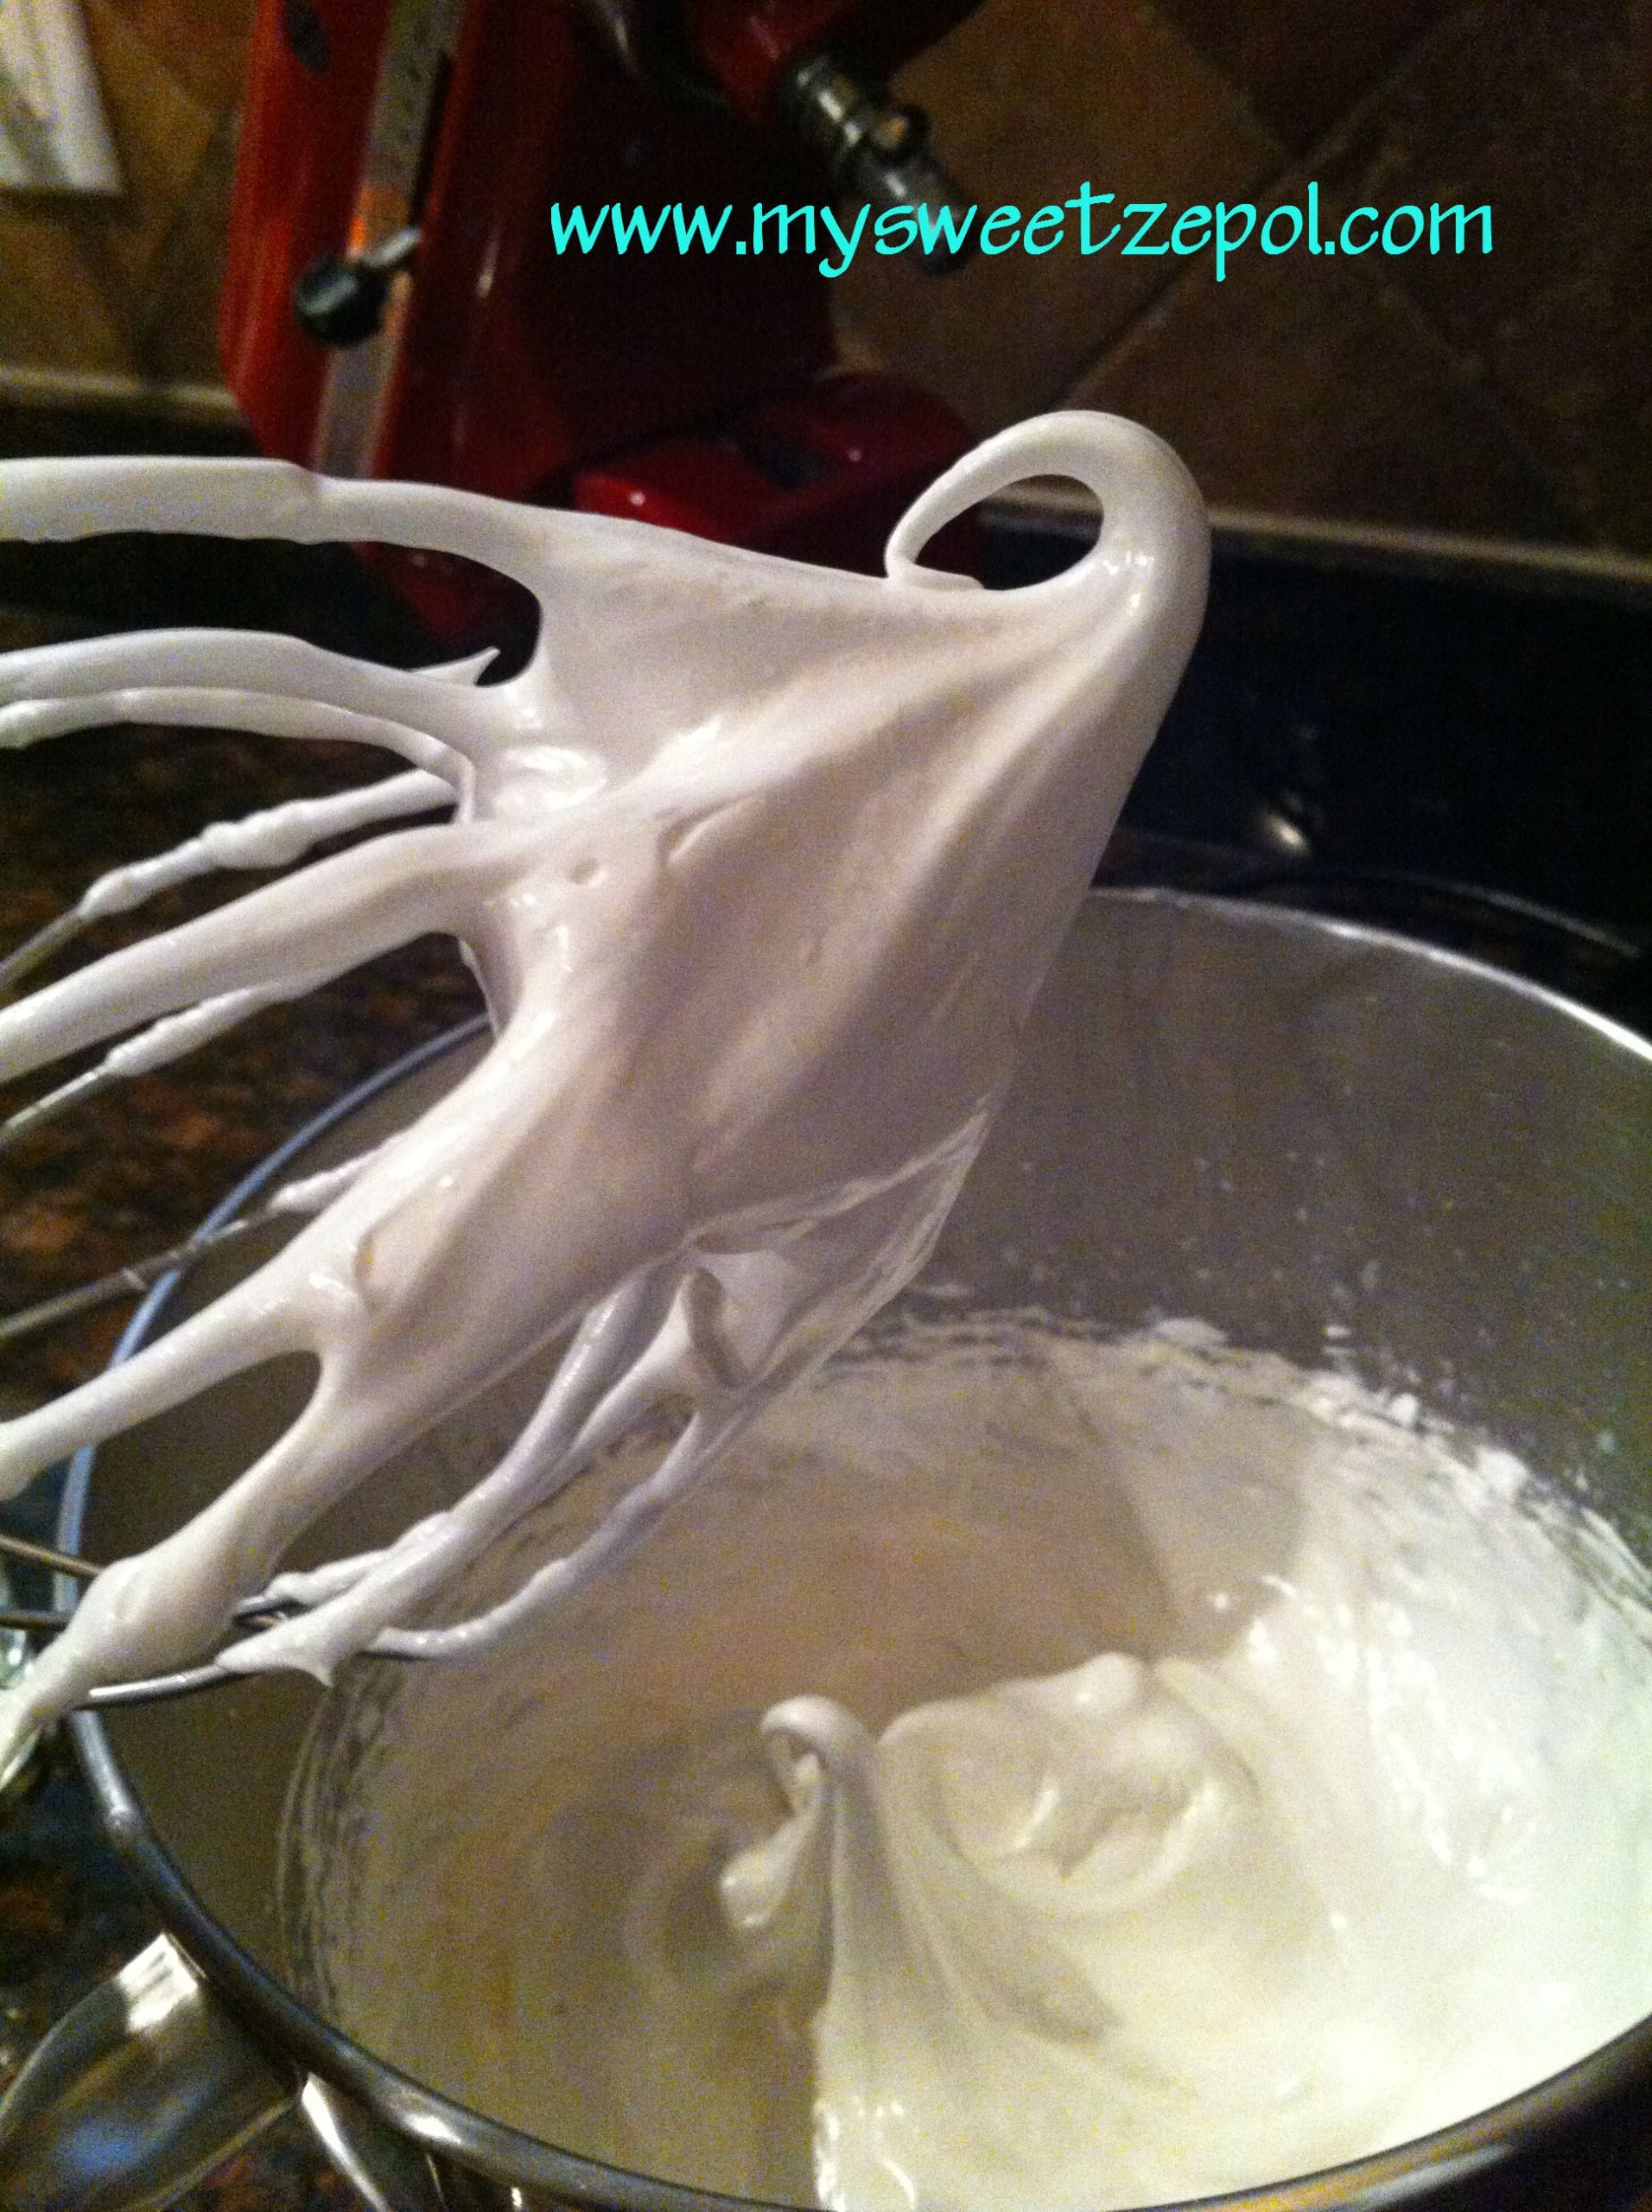 Meringue Cookies in the making